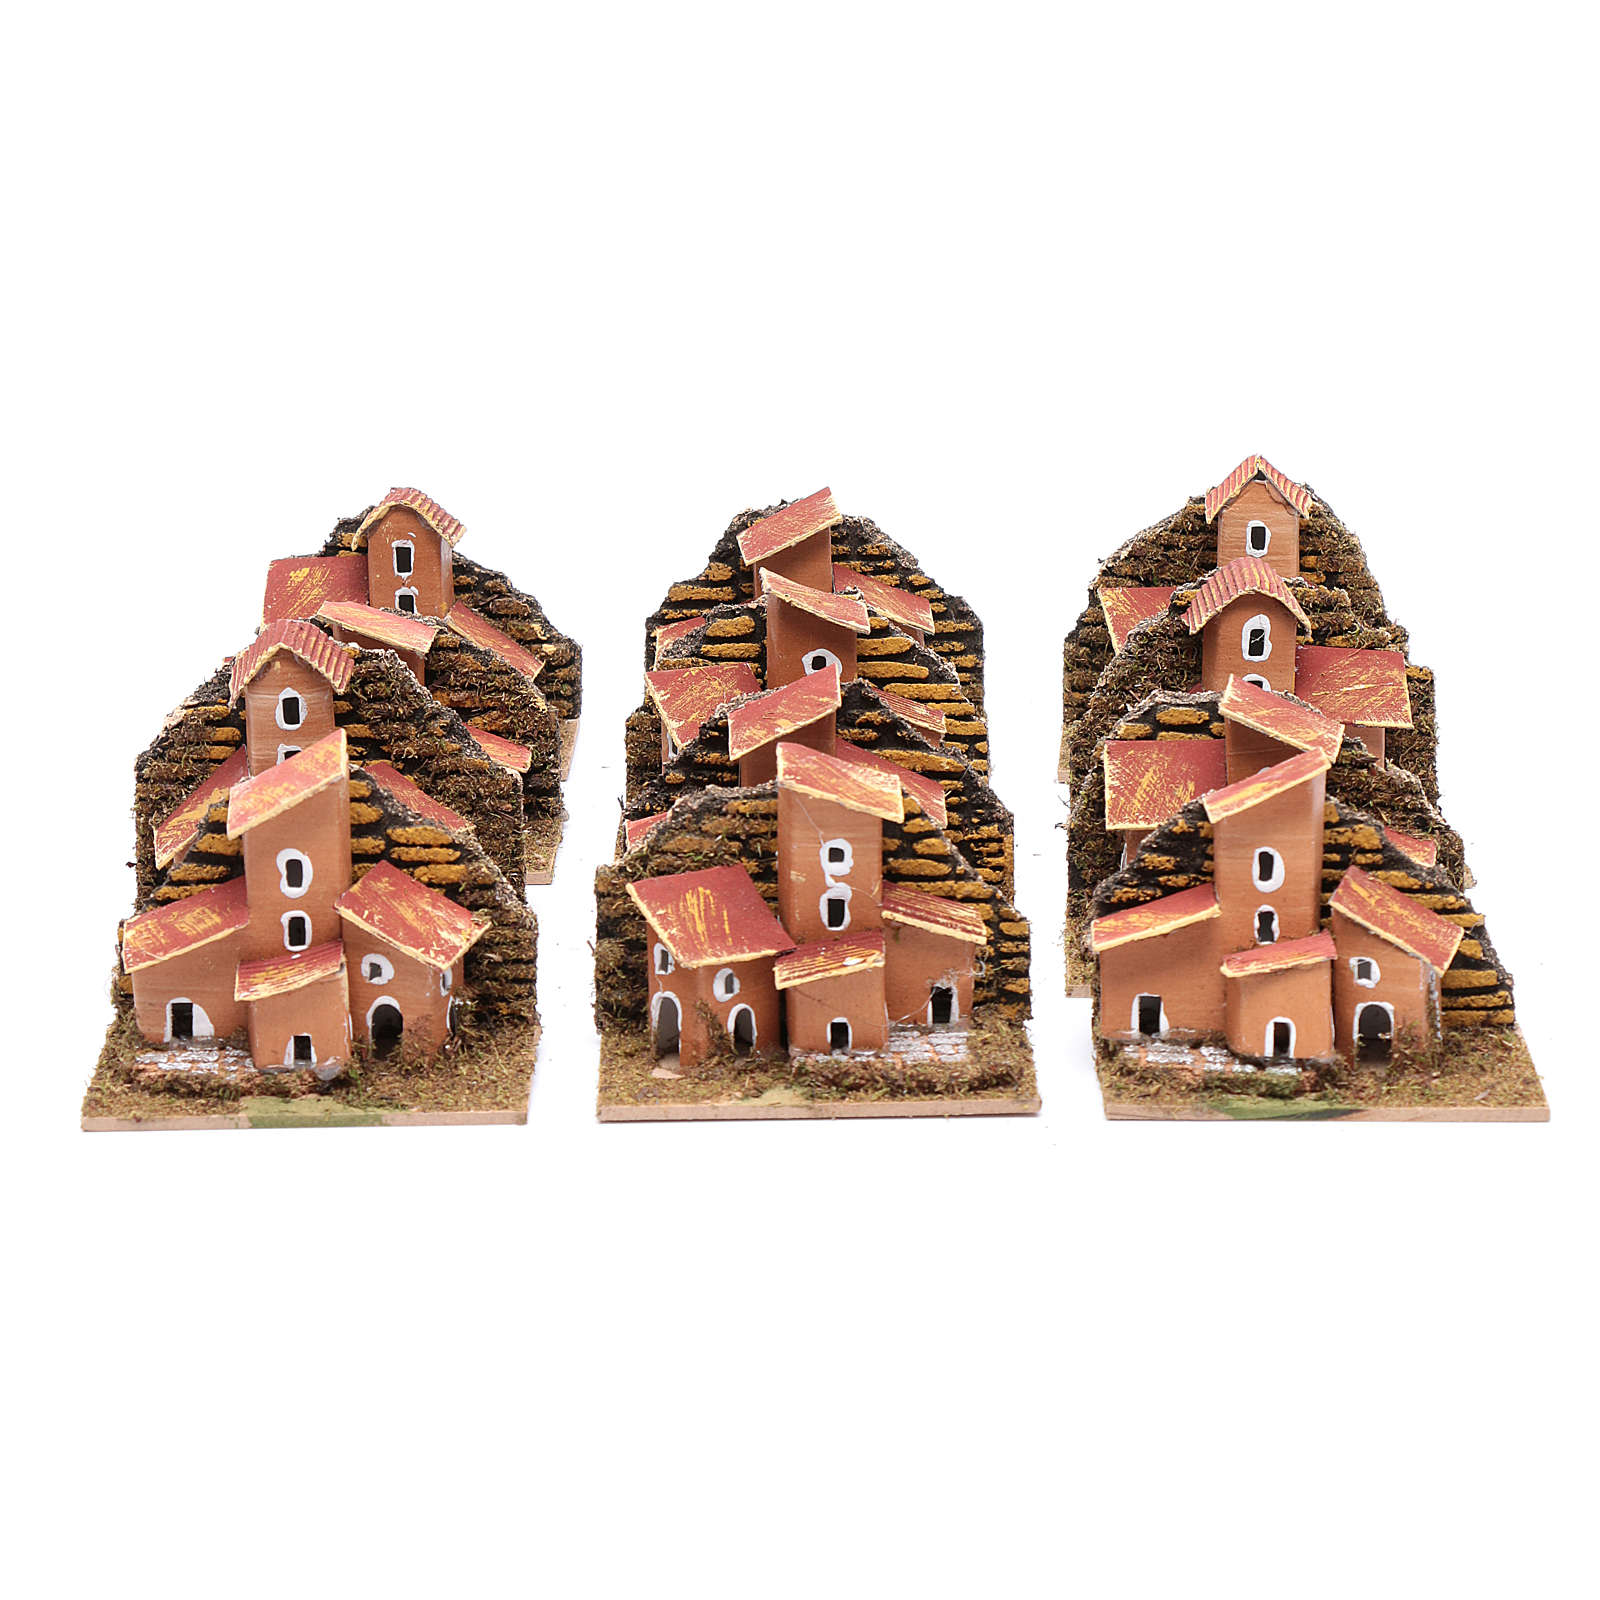 Set of 12 little houses 5x10x5 cm for DIY nativity scene 4